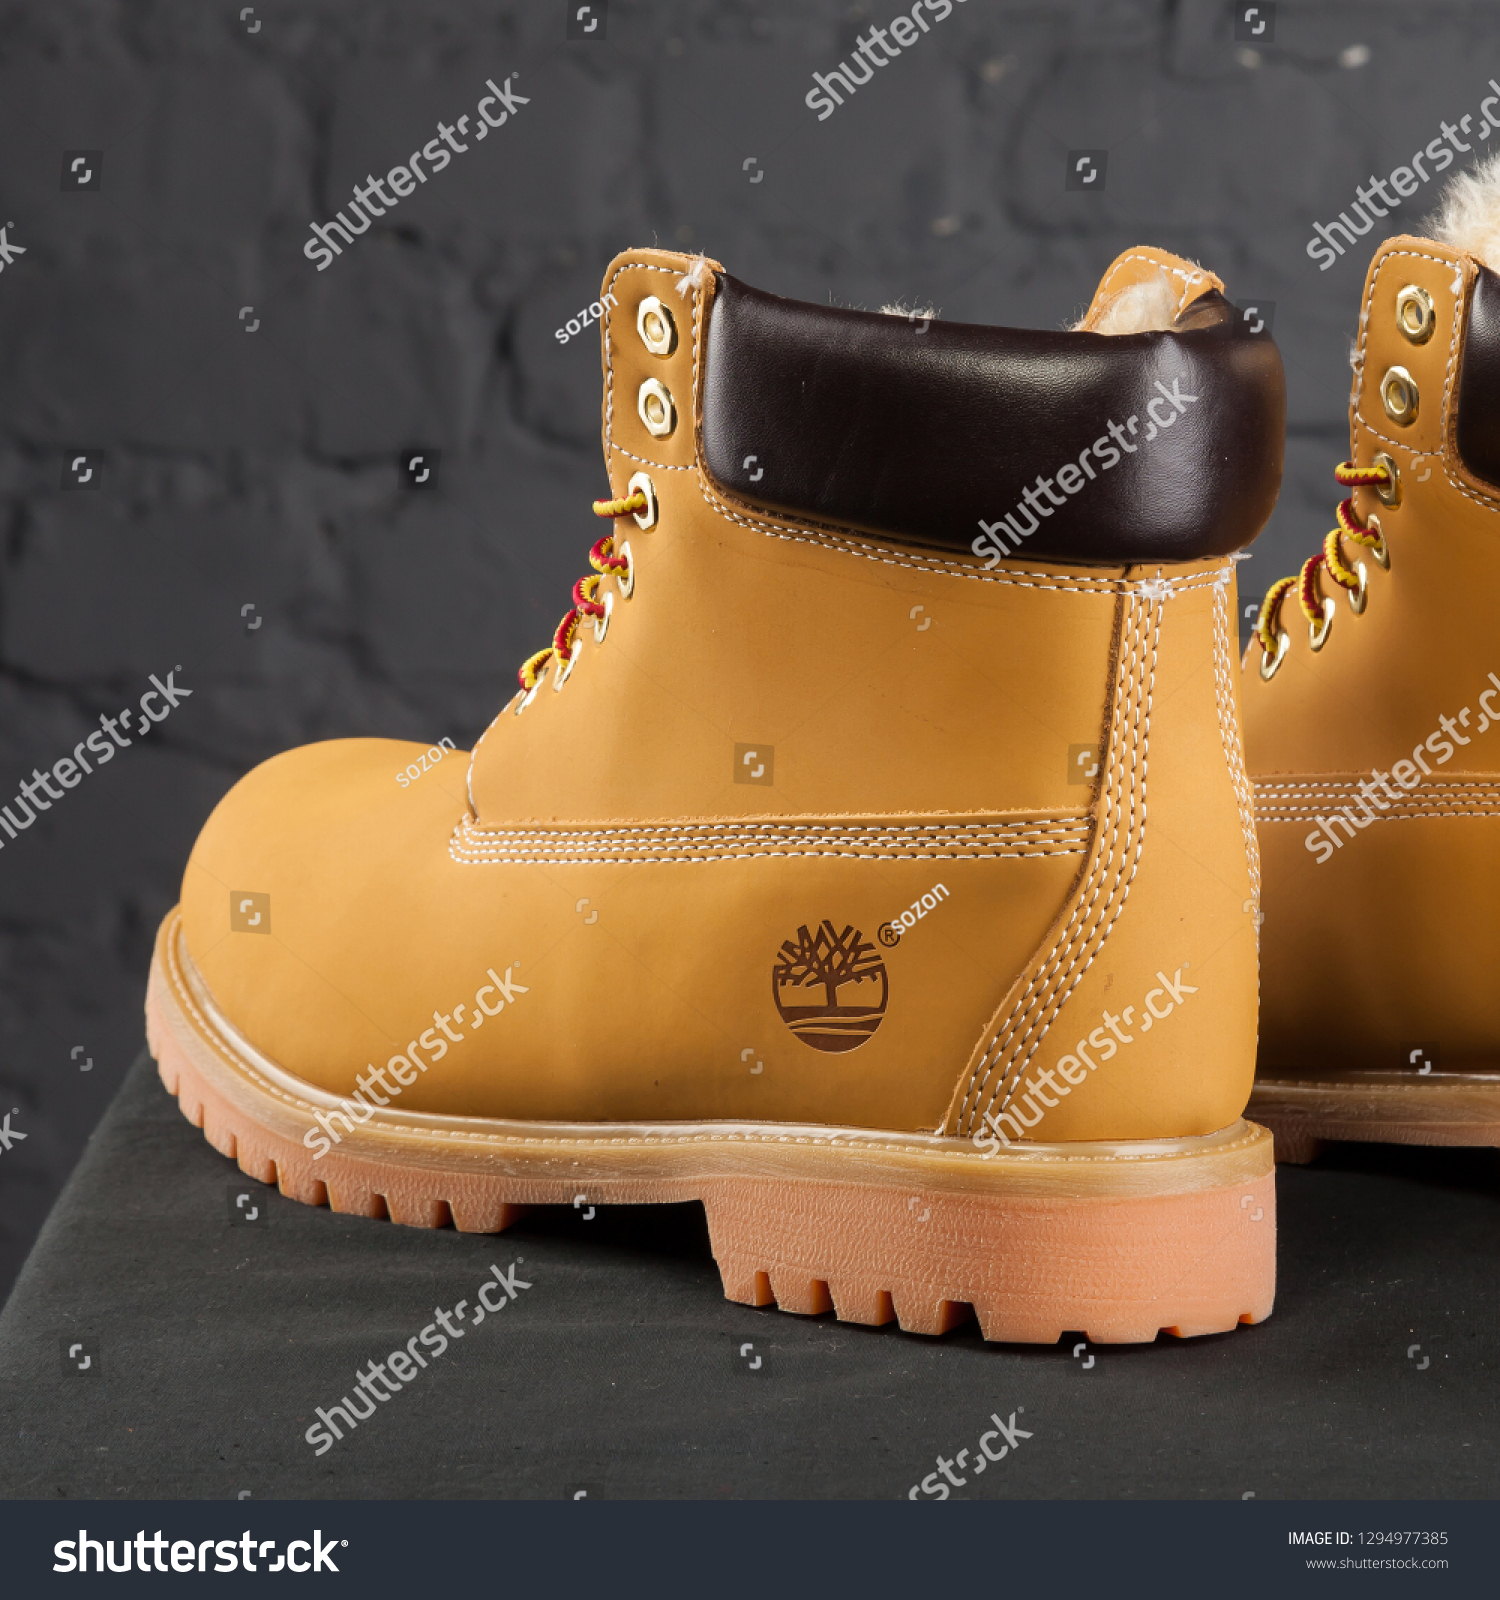 Sin personal Siempre amistad  New Beautiful Colorful Nice Timberland Tracking Stock Photo (Edit Now)  1294977385